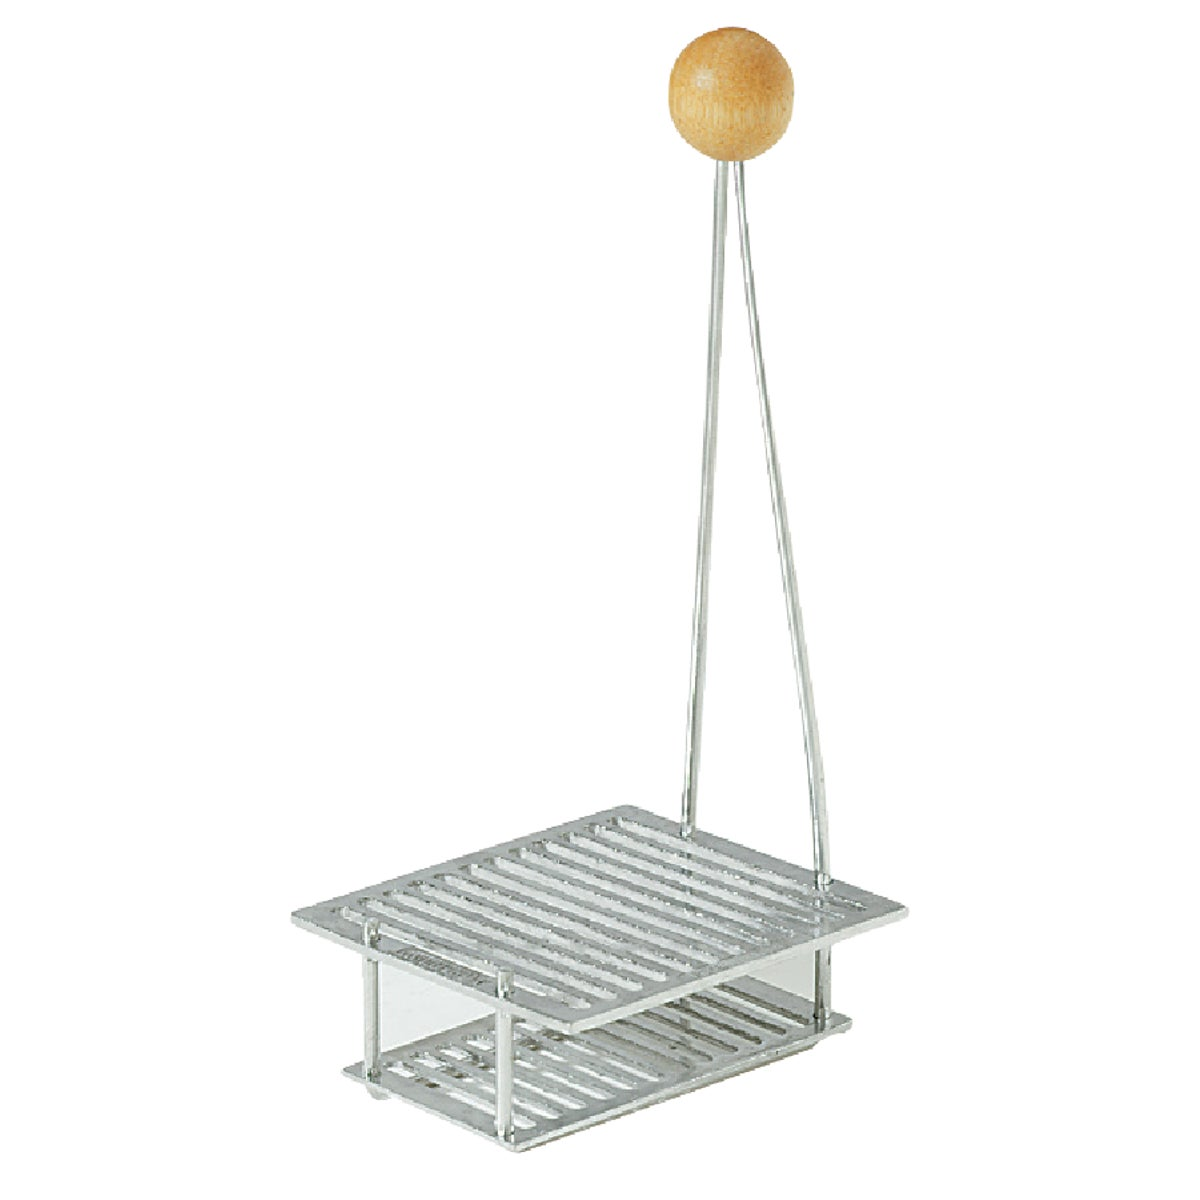 STERILIZING LID RACK - 605 by Norpro